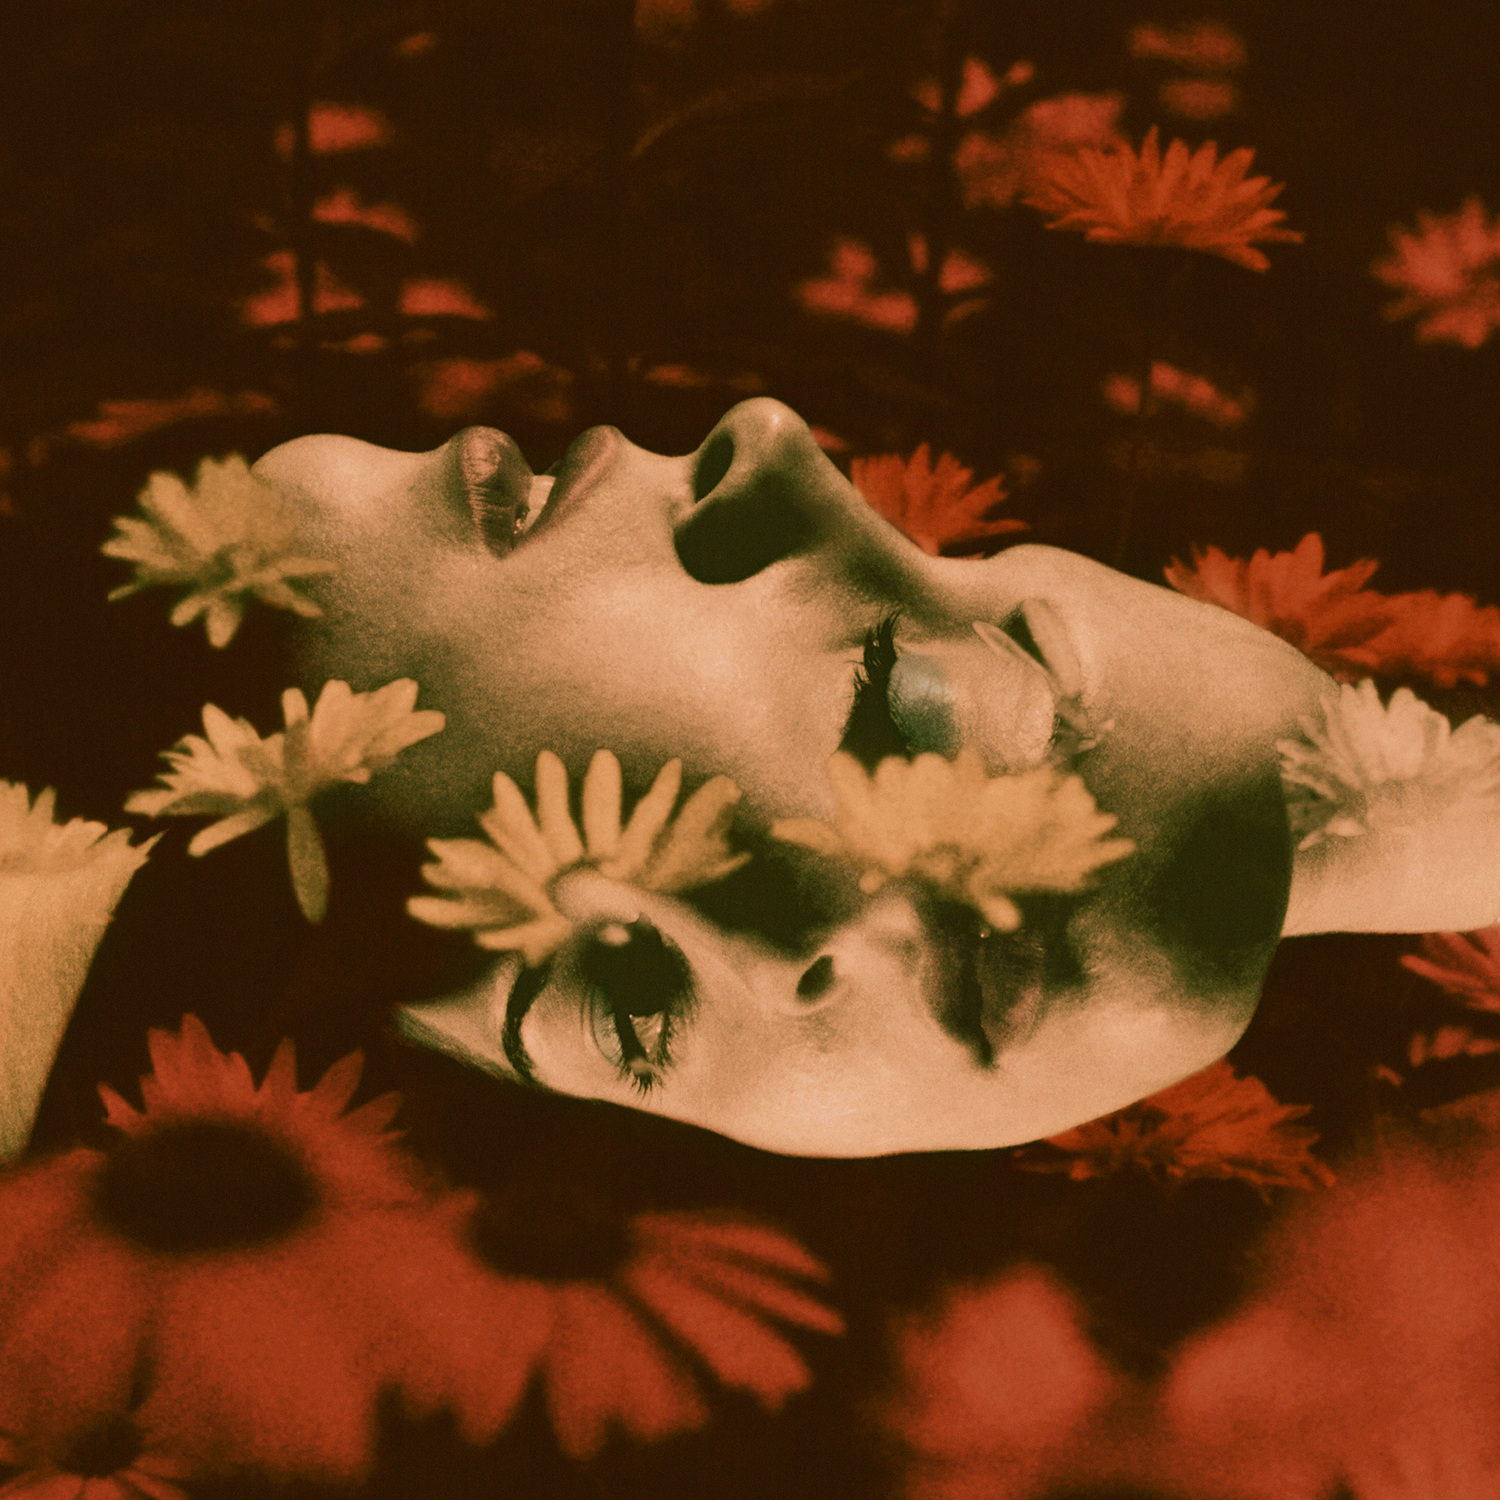 1 - Embry Dream Scene - Neil Krug.jpg